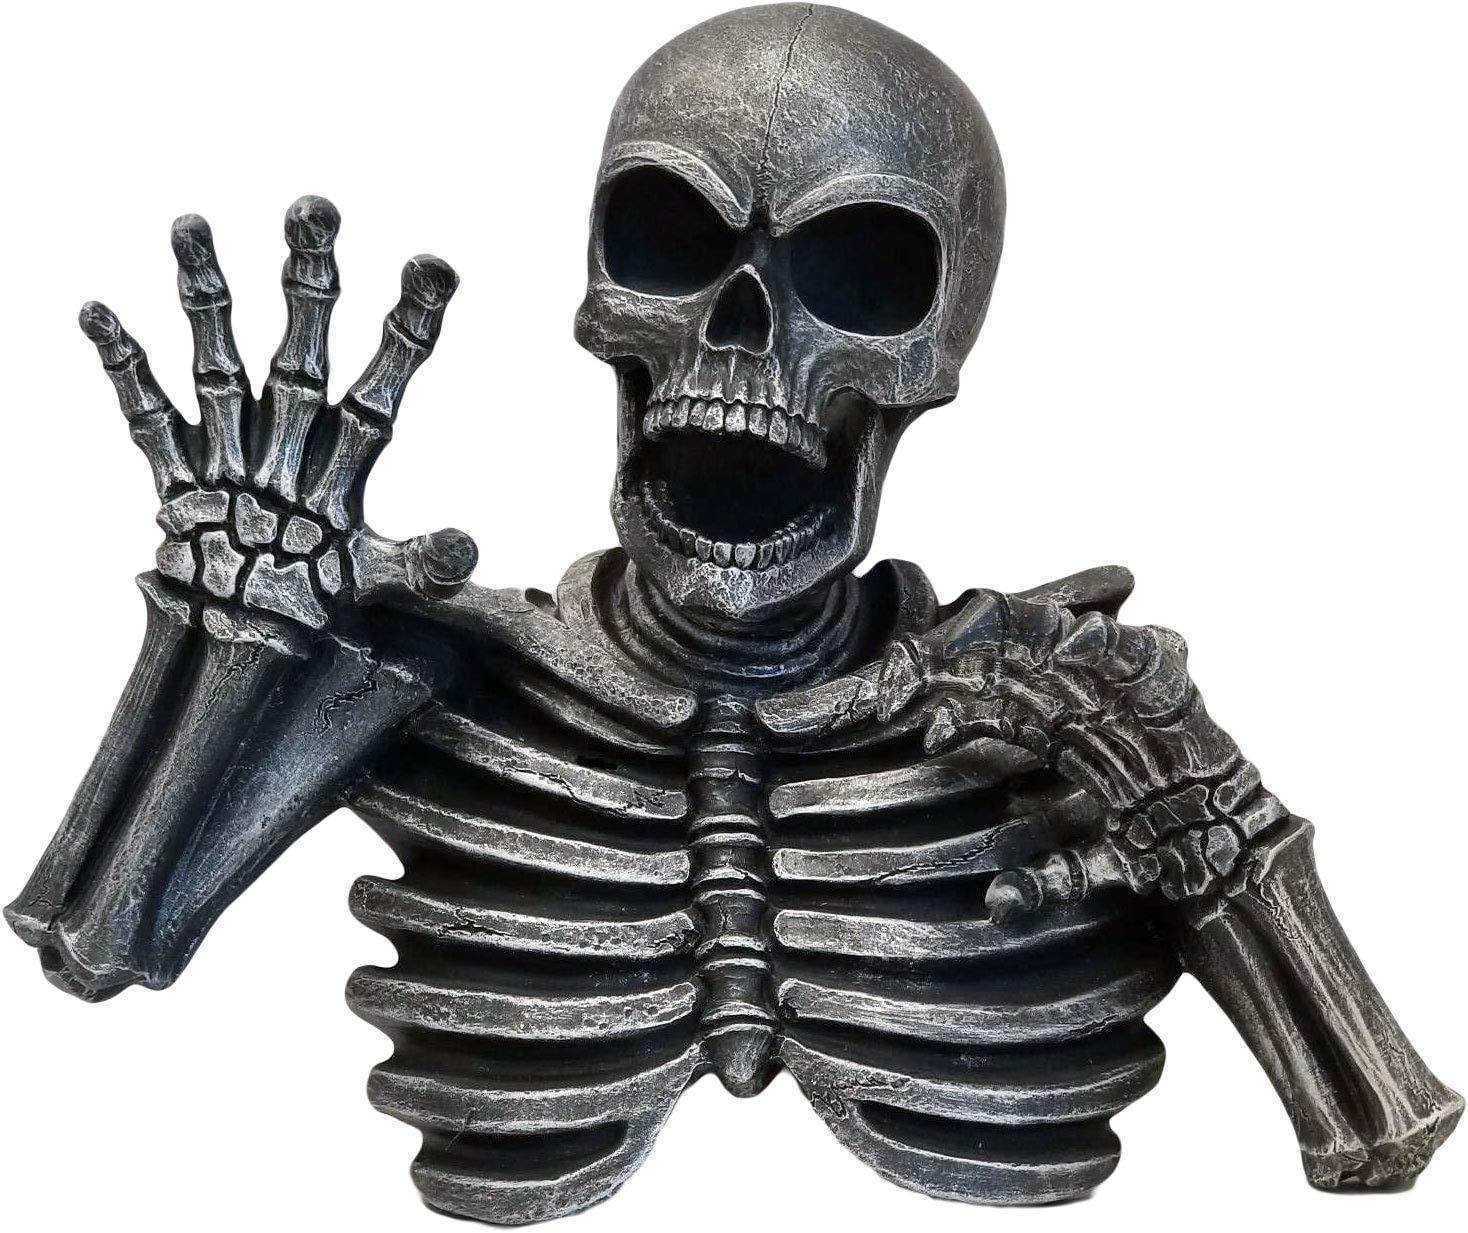 DWK - The Haunting - Creepy Haunted Skeleton Sculpture Spooky Halloween Horror Gothic Wall Mount Decor Accent for Home and Garden, Antique Black Pewter Finish, 14-inch